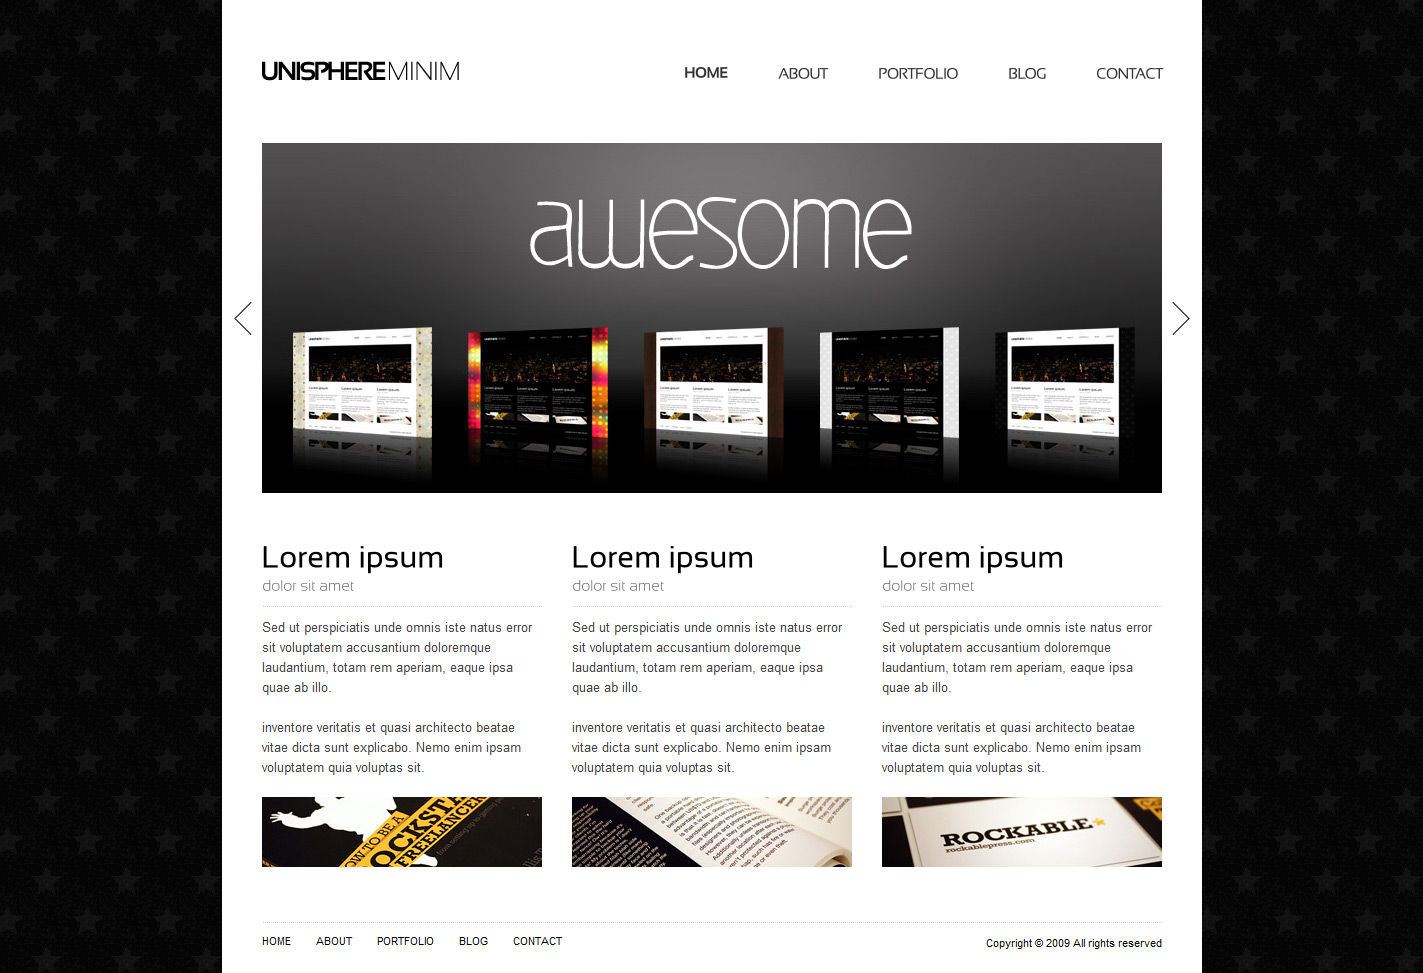 UniSphere Minim Corporate and Portfolio